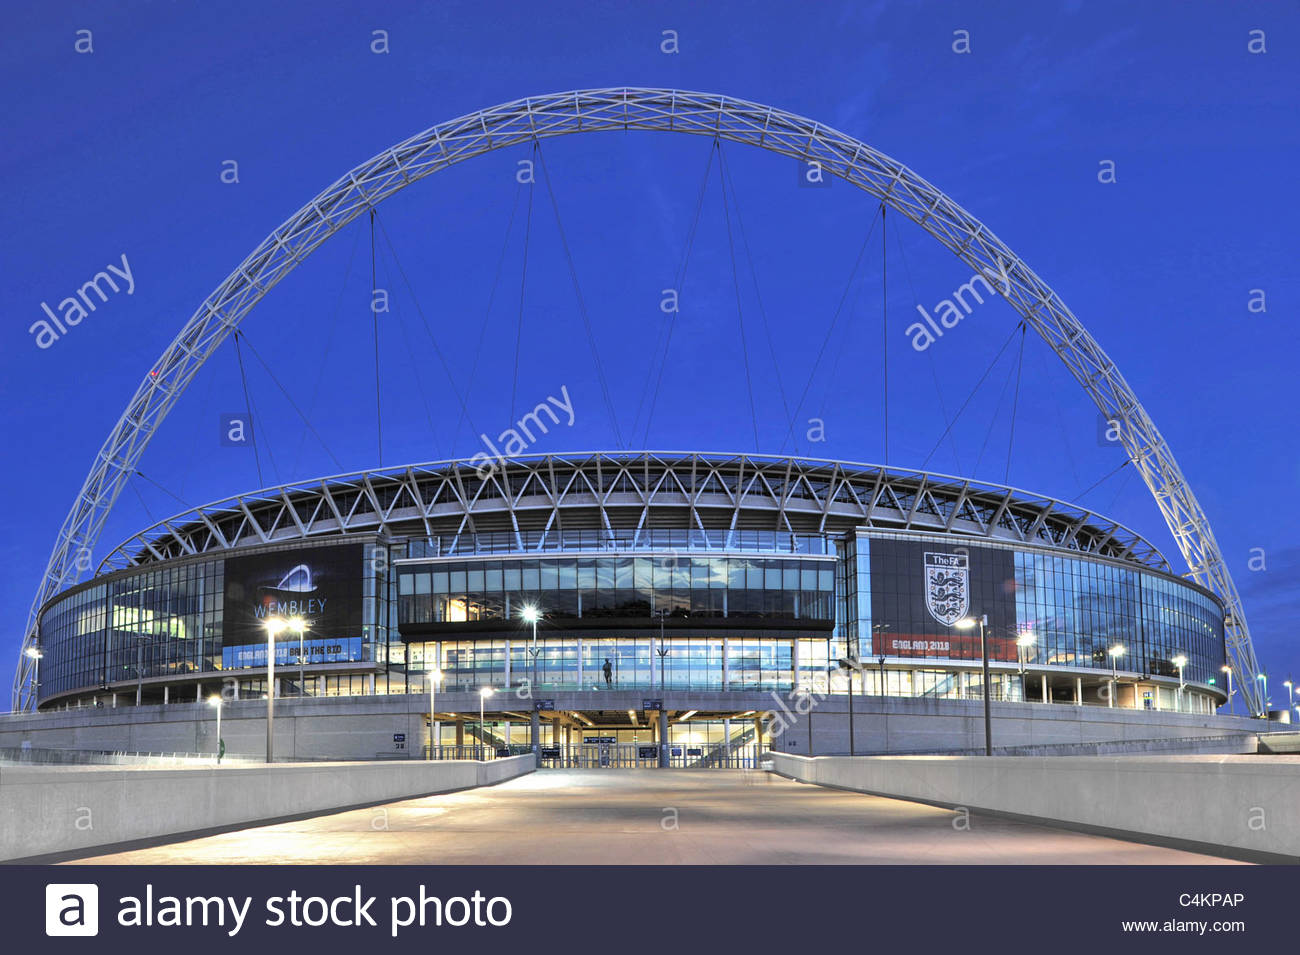 Wembley Stadium front illuminated at dusk, London England UK - Stock Image